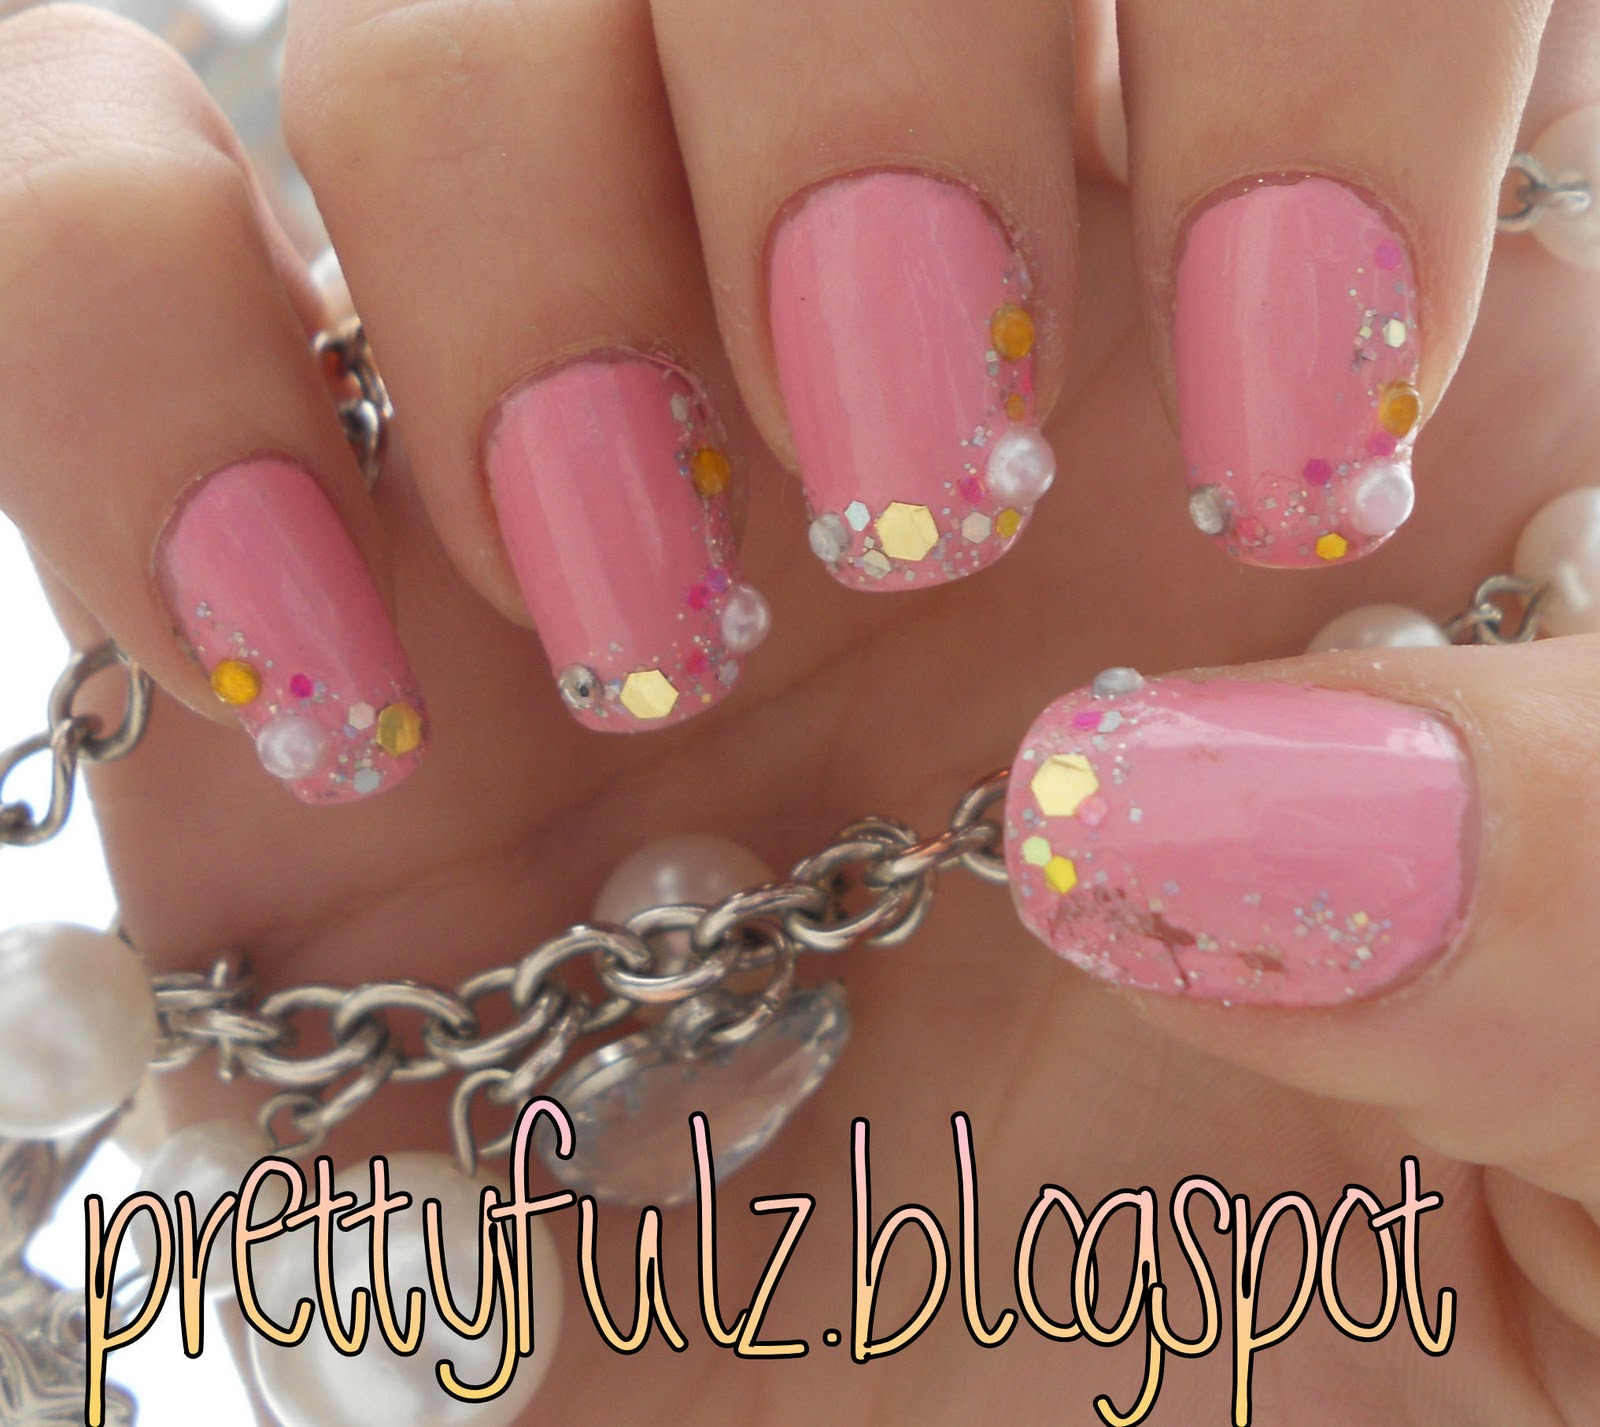 Prettyfulz Fall Nail Art Design 2011: Prettyfulz: PINK DECO NAIL ART DESIGN